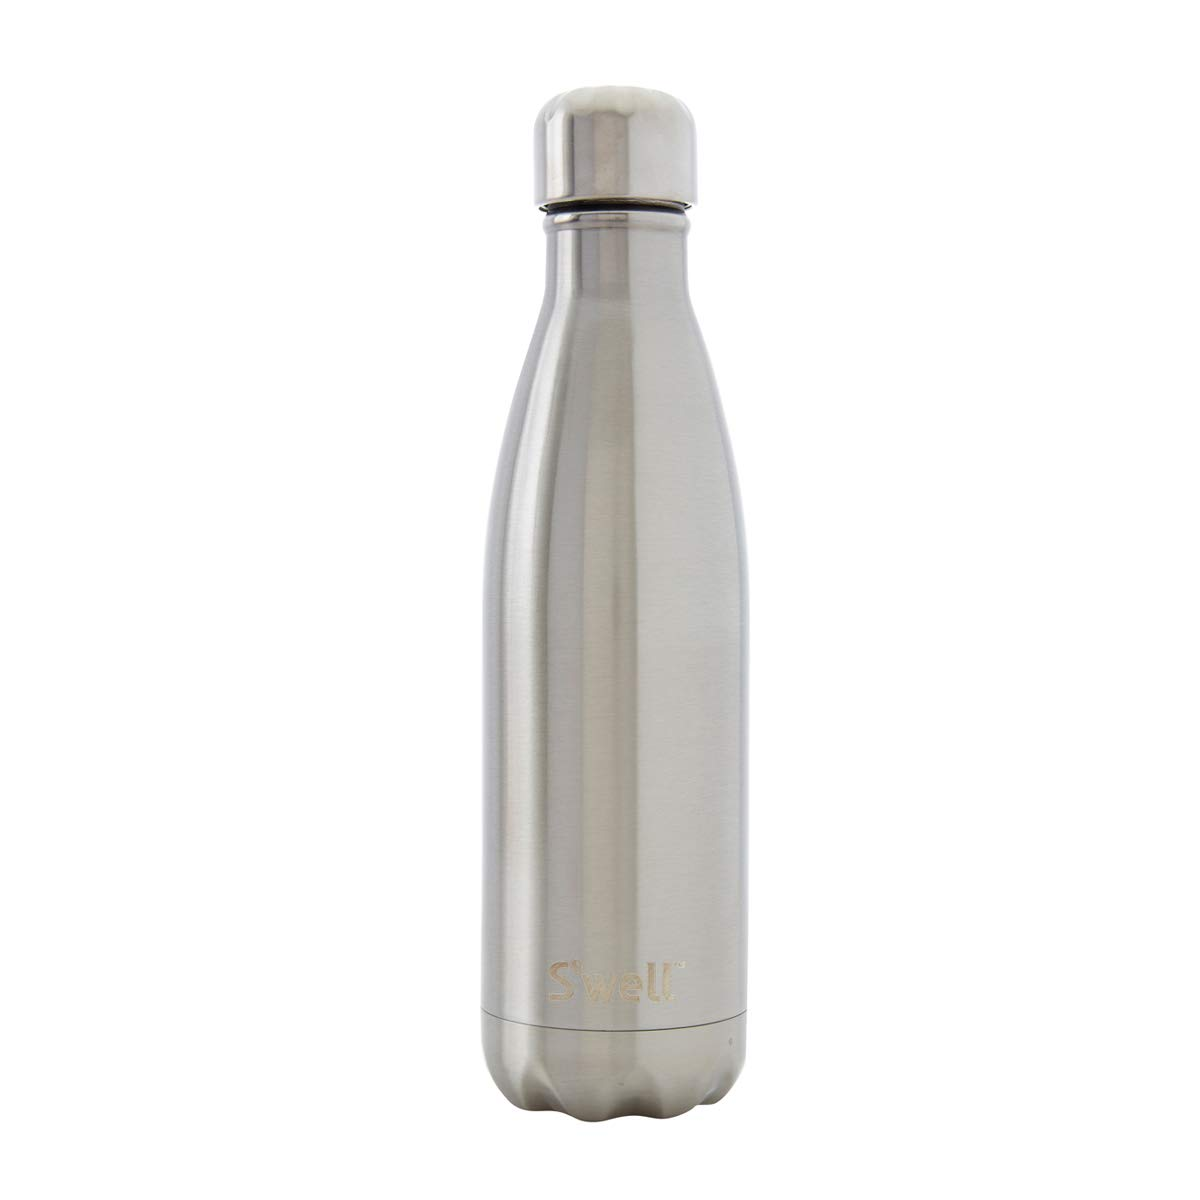 S'well Vacuum Insulated Stainless Steel Water Bottle, 17 oz, Silver Lining by S'well